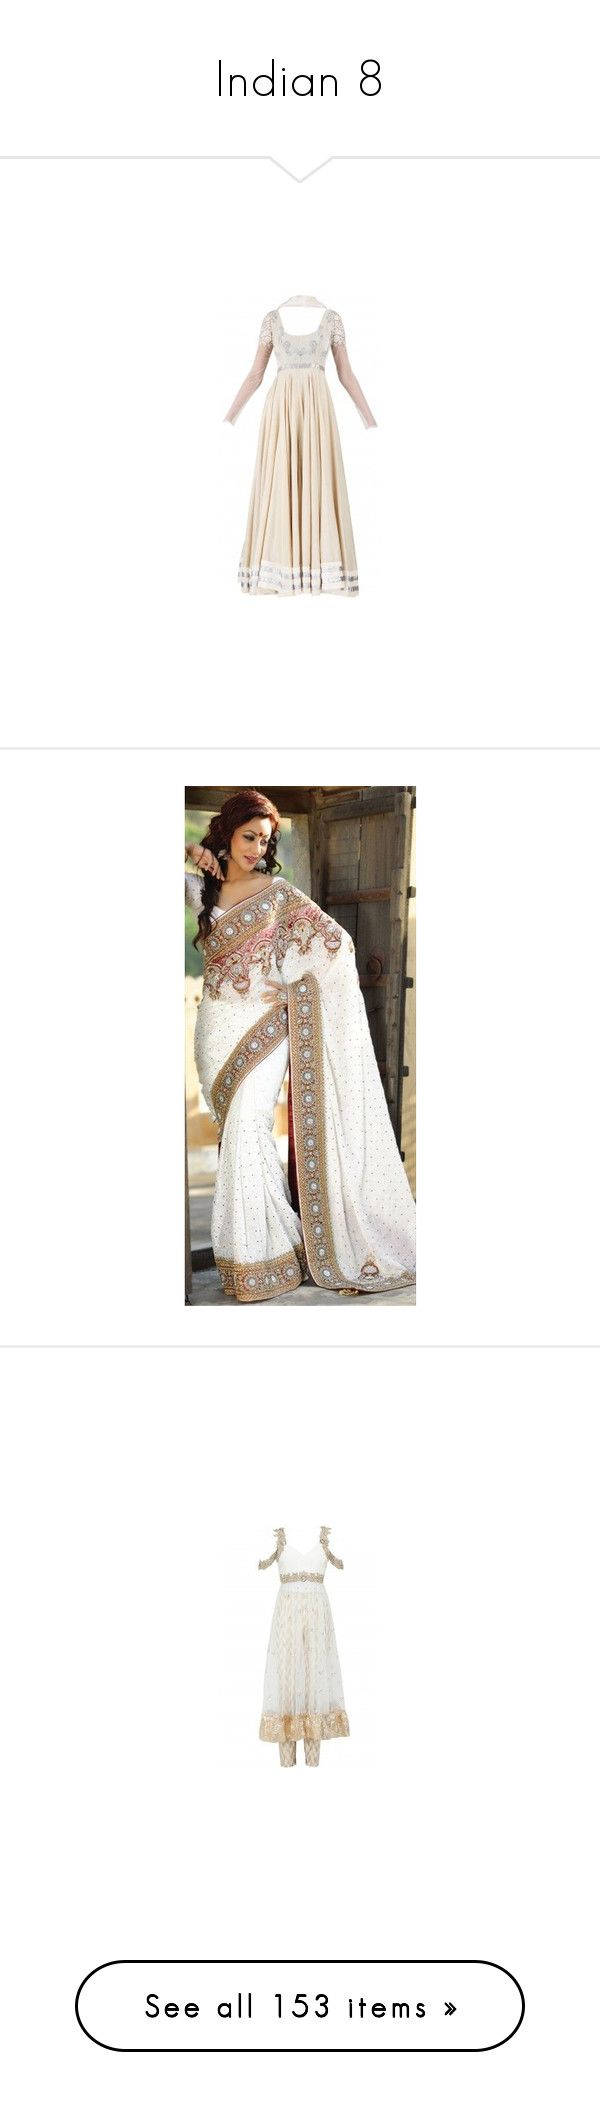 """""""Indian 8"""" by o-hugsandkisses-x ❤ liked on Polyvore featuring saree, dresses, tops, shirts, lingerie, vests, indian, sari, anju and backgrounds"""